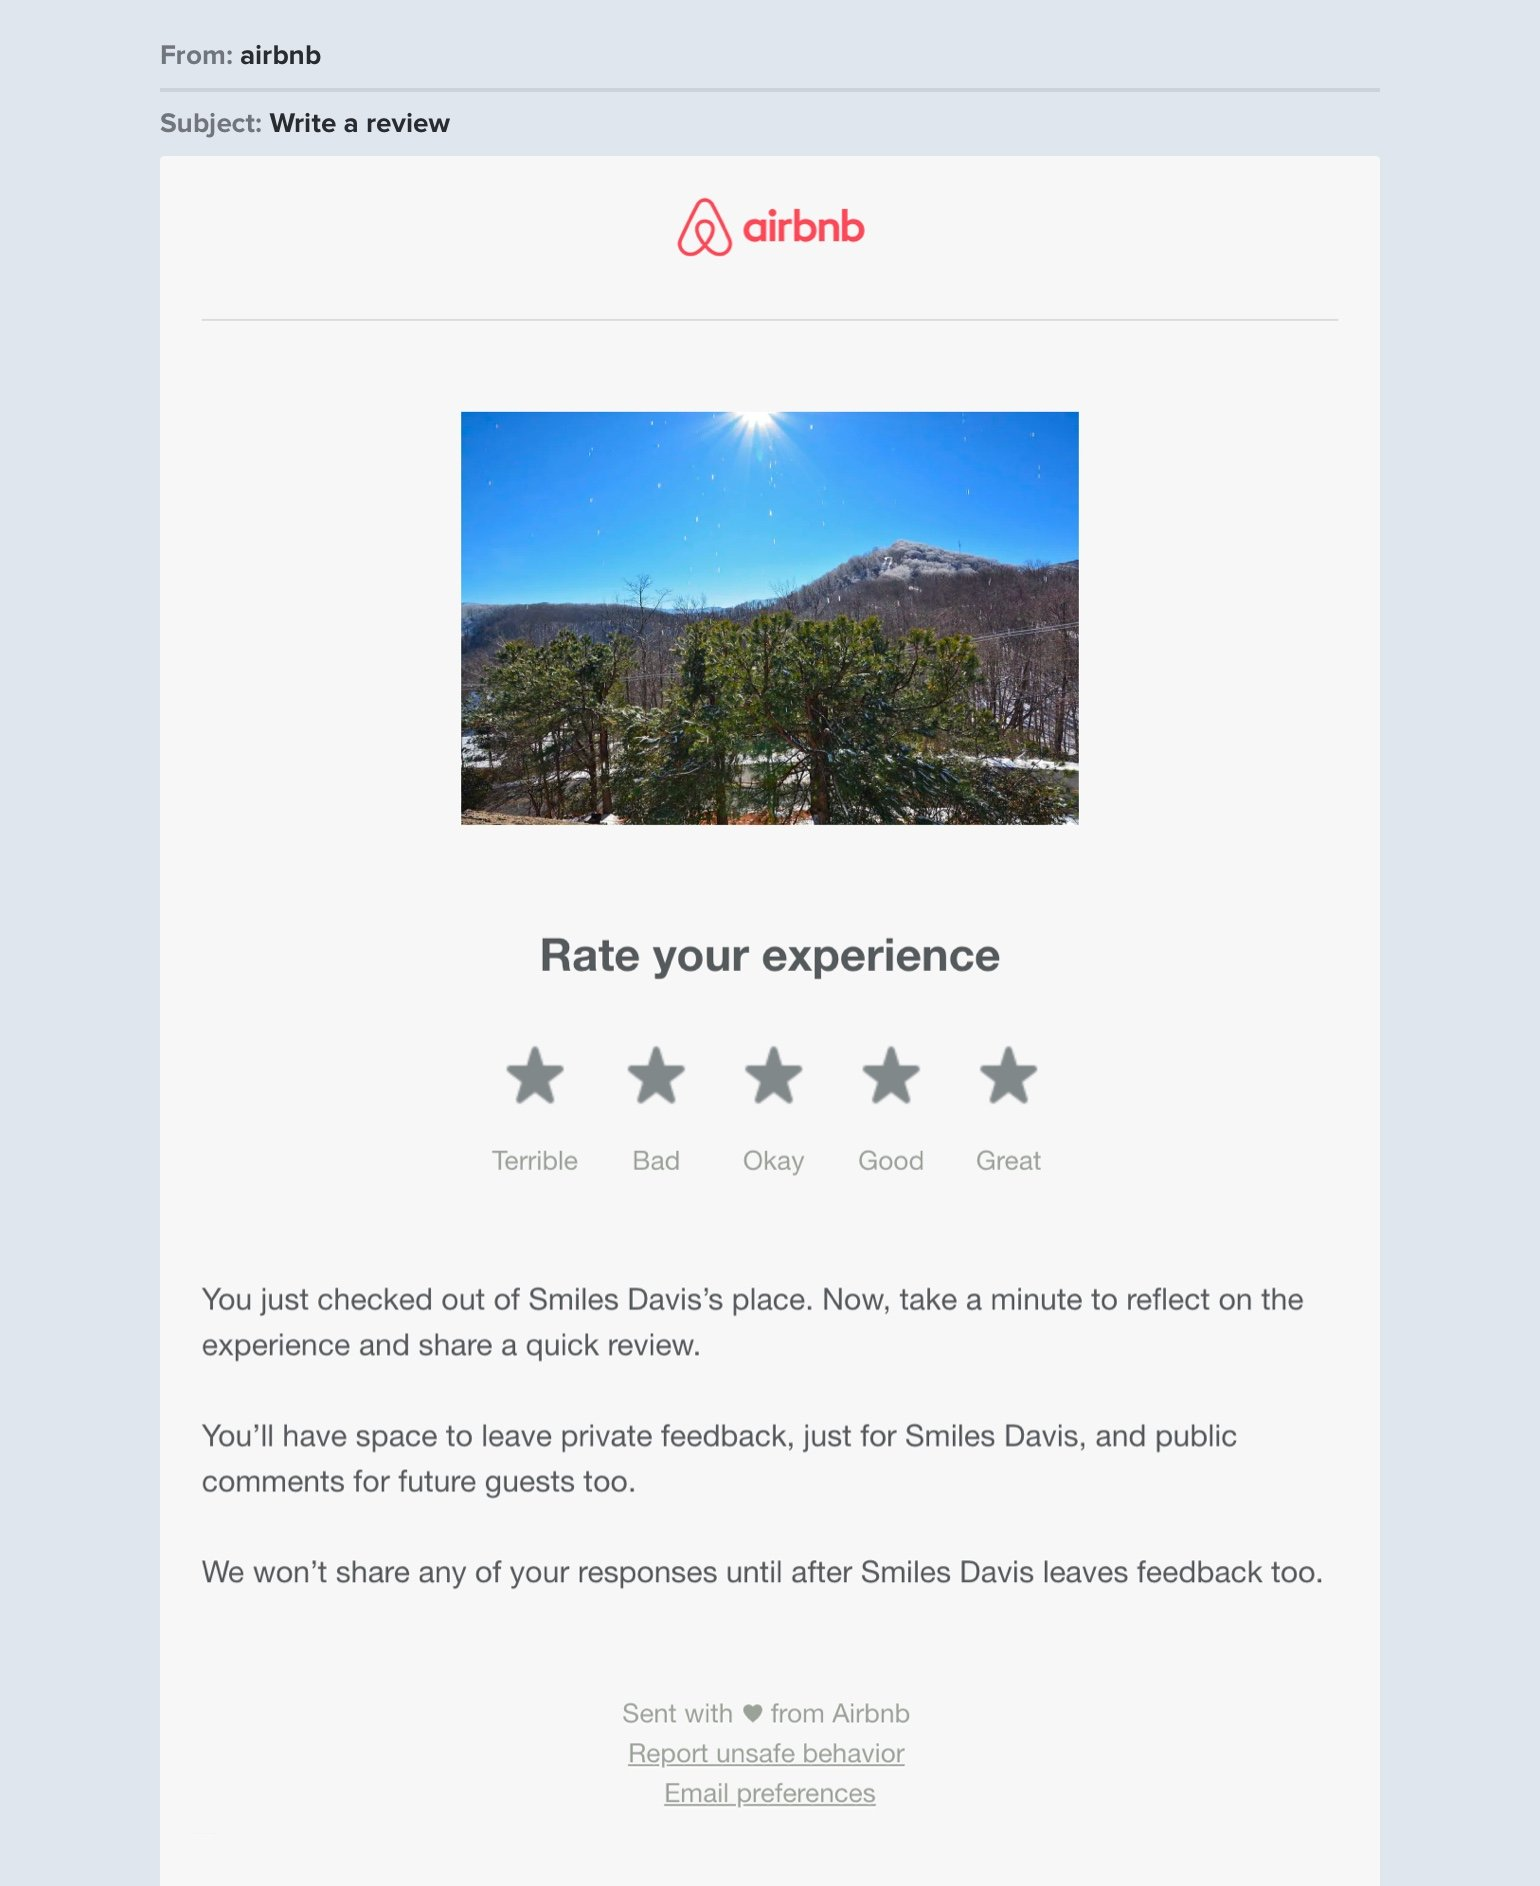 Airbnb survey newsletter example